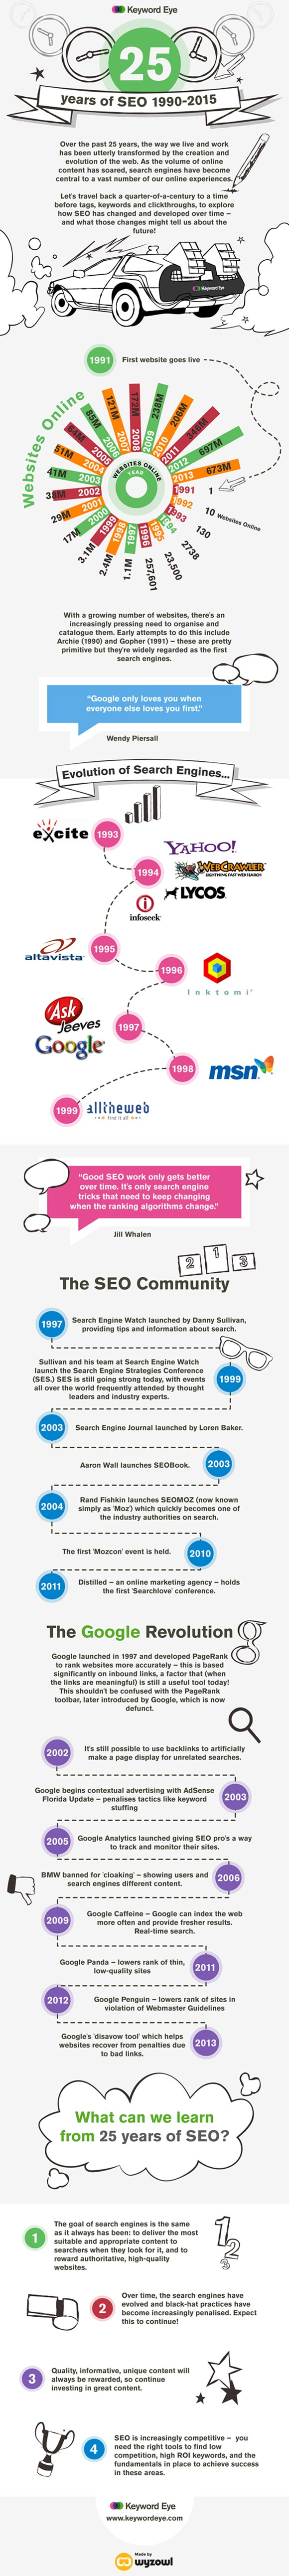 25 Years of SEO - INFOGRAPHIC